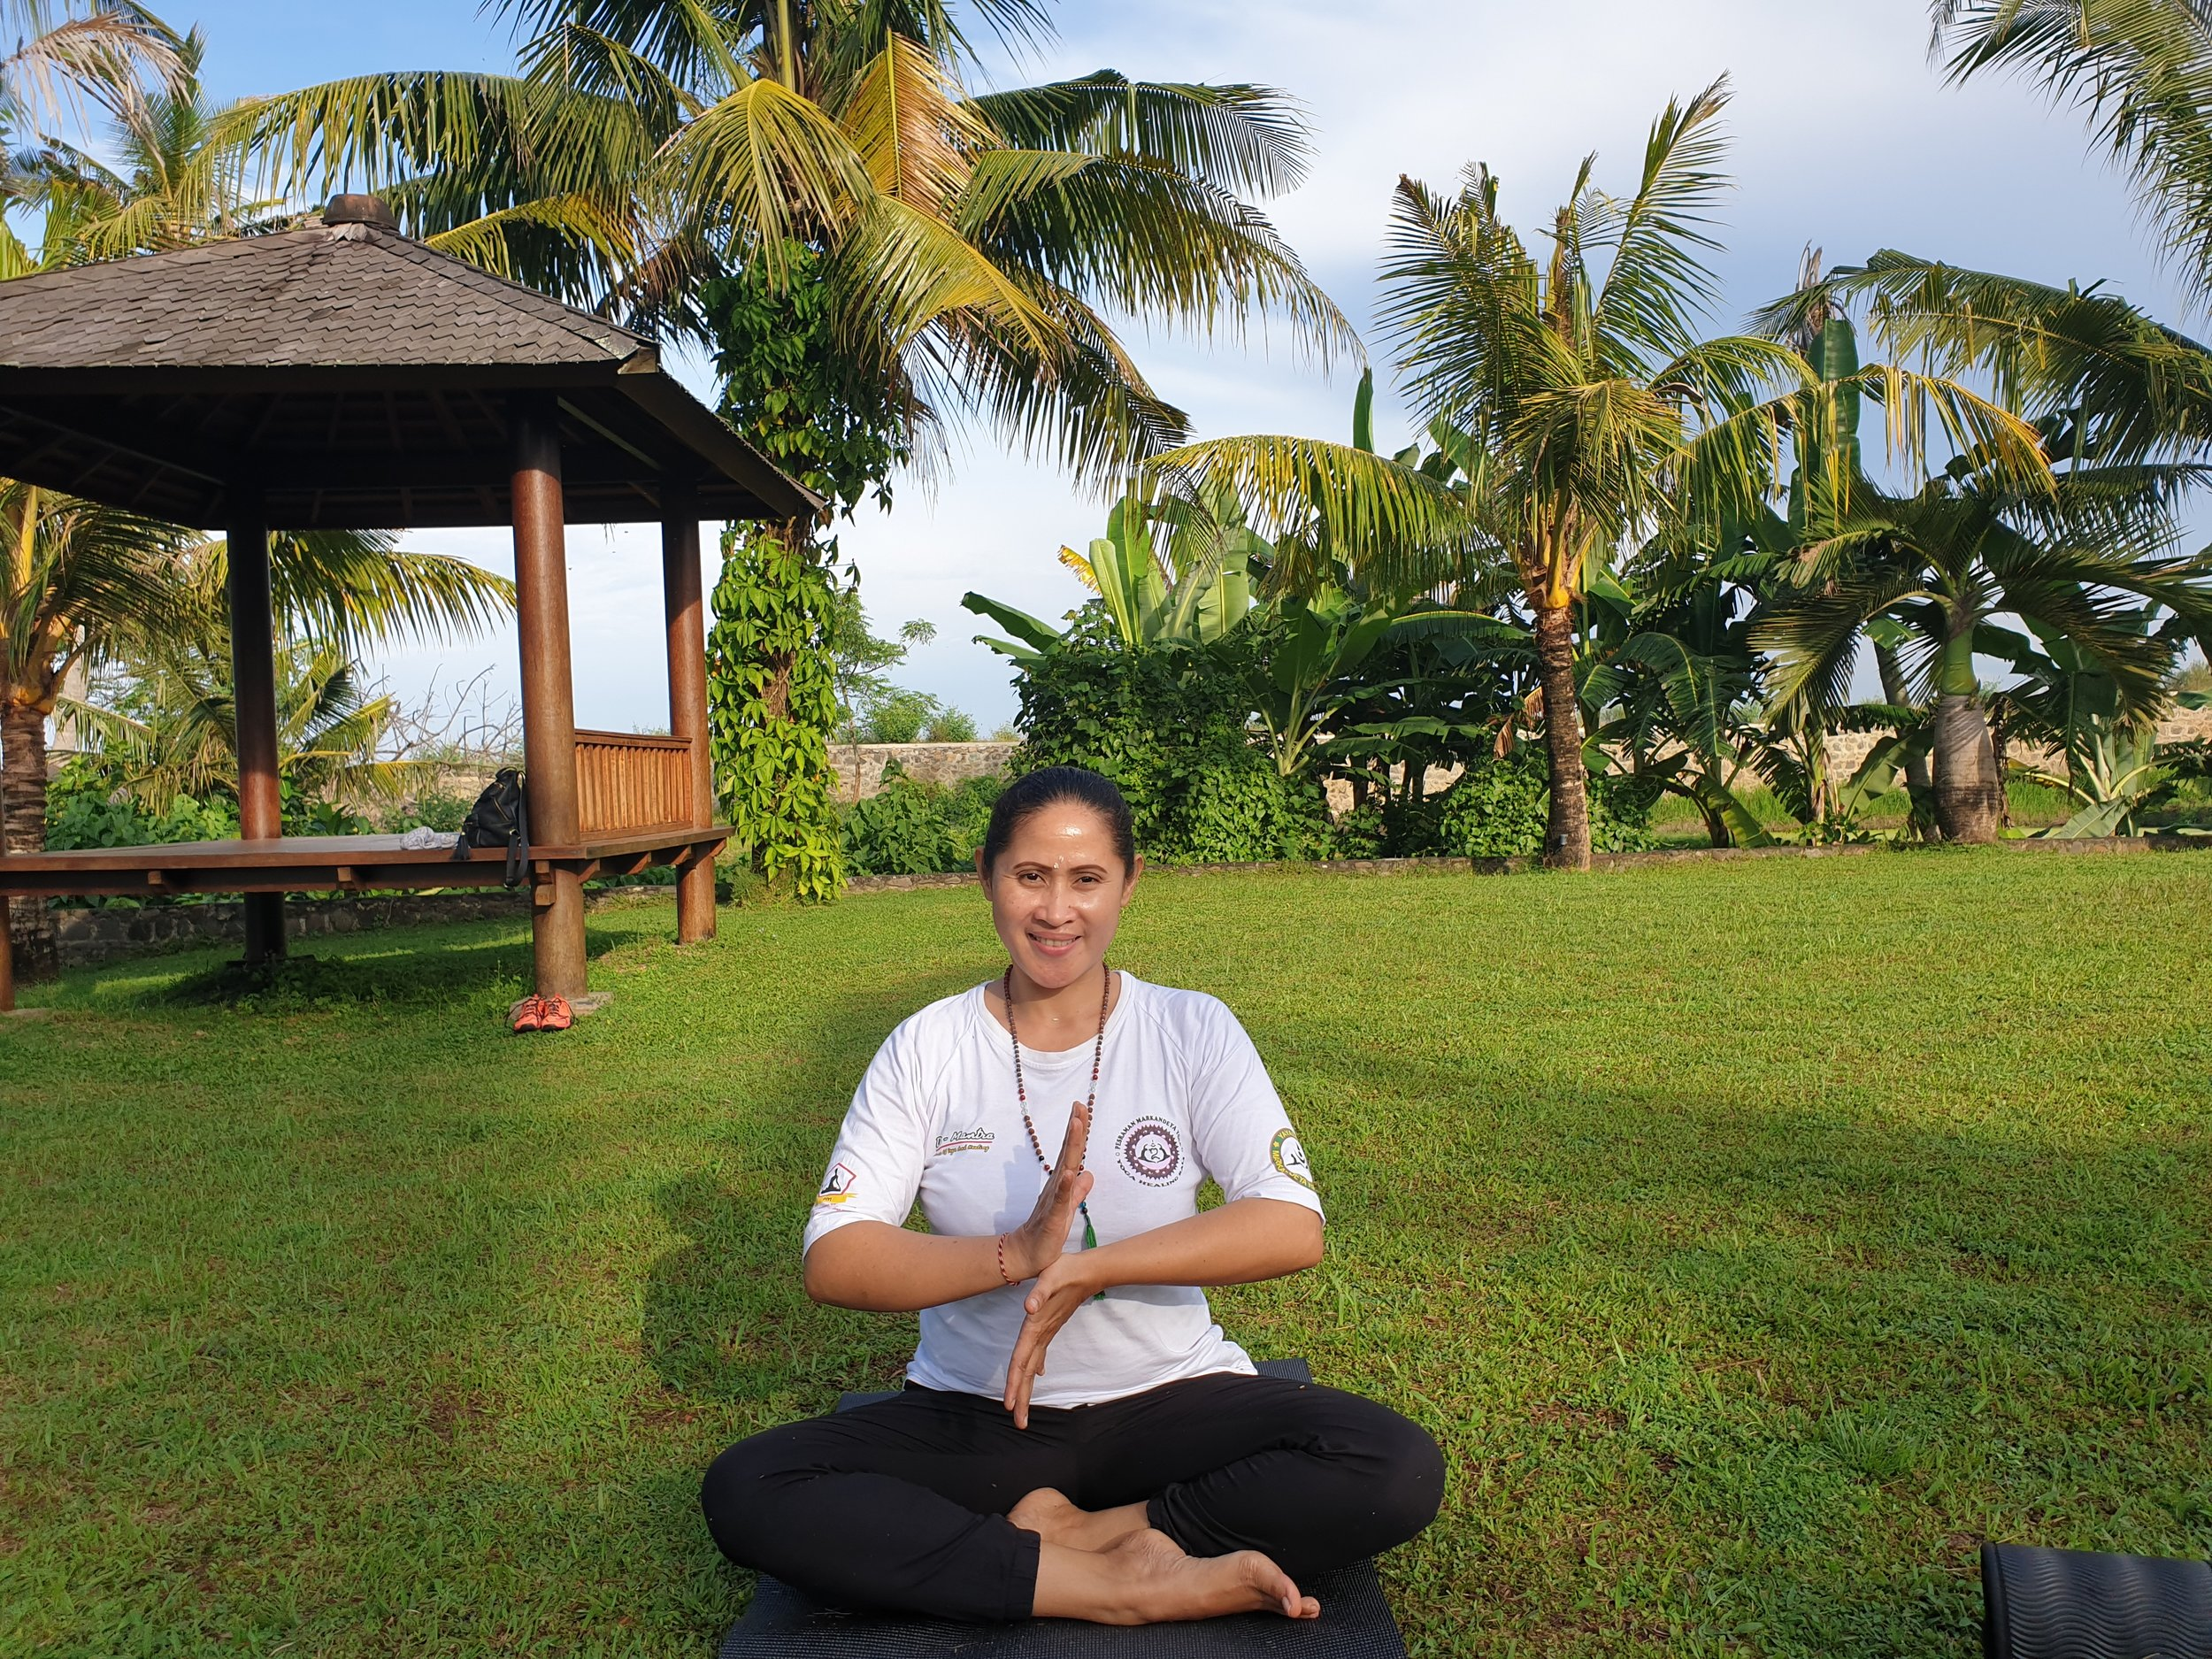 The experienced yoga teacher Ayu Srie gives private Yoga lessons of 1 or 1.5 hour at villa Nio. You can indicate which form of Yoga you wish to practice. Experience Yoga at sunrise or sunset in the private garden of villa Nio